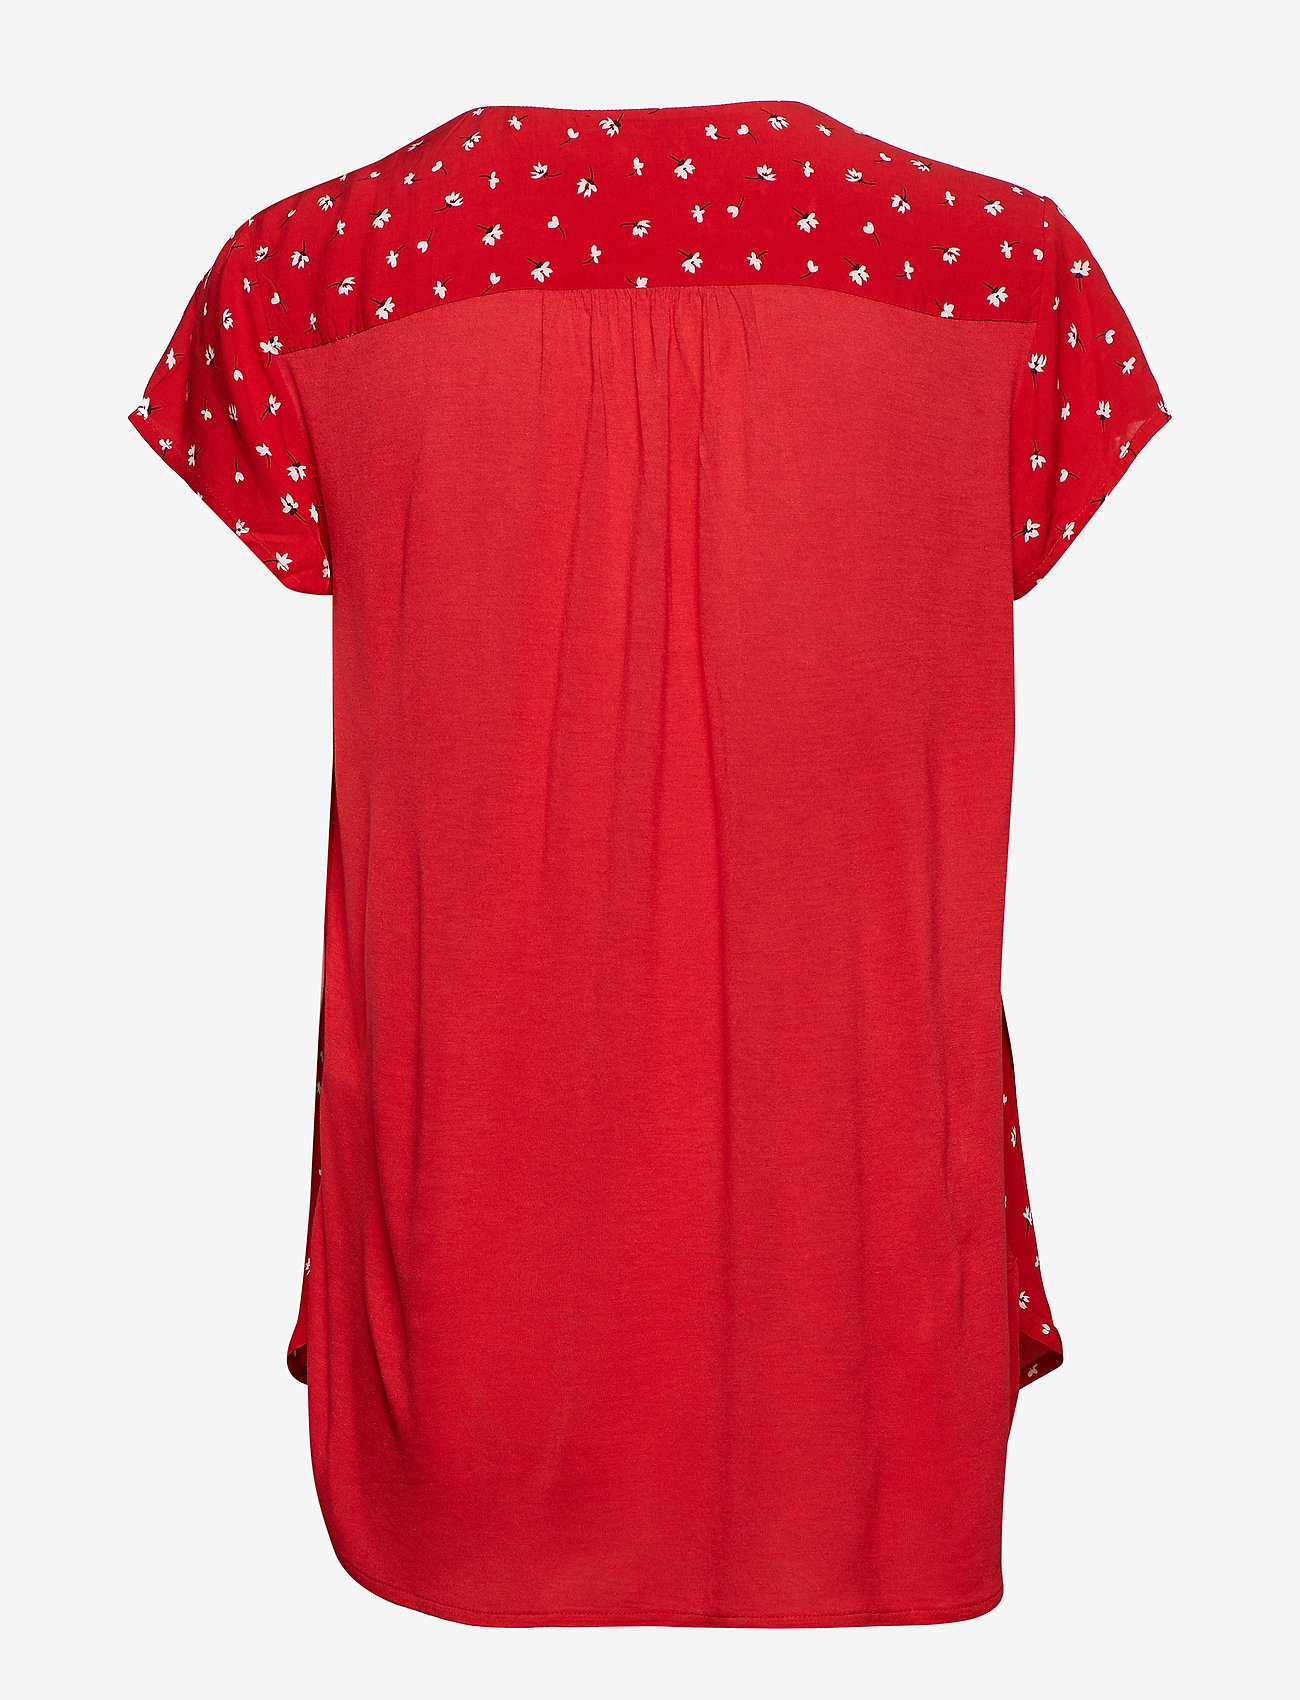 Esprit Casual - Blouses woven - t-shirts - red - 1